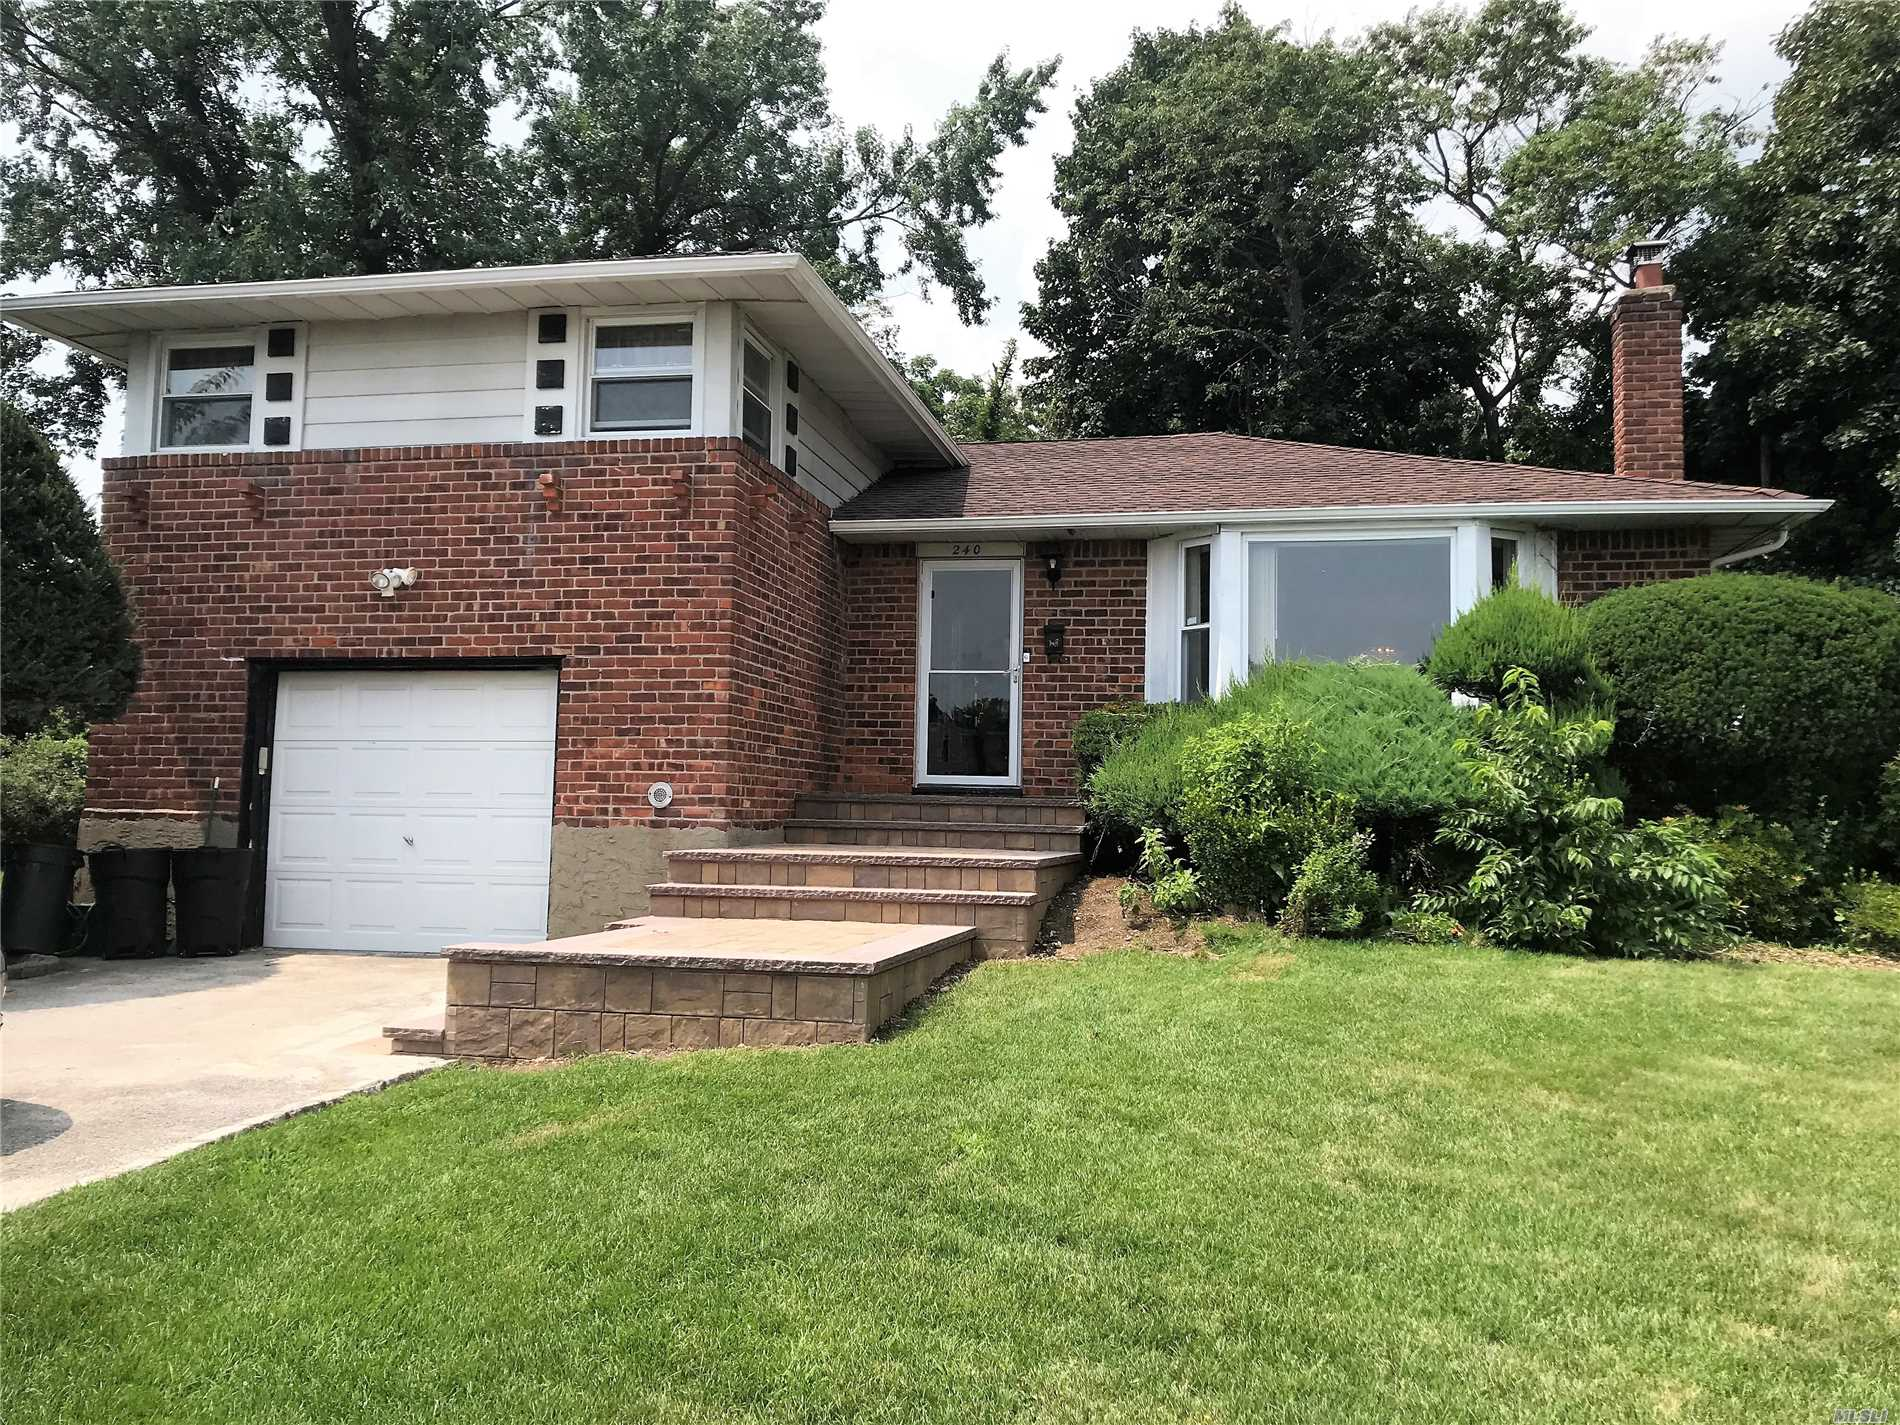 Split On A Cul Desac With East Meadow Schools #3 With Levittown Address, 4/5 Bedrooms, And 3 Full Baths, Central Ac, Hard Wood Floors, 5th Bedroom Could Be A Den Or Additional Master Bedroom. Large Deck, Very Private, Huge Basement